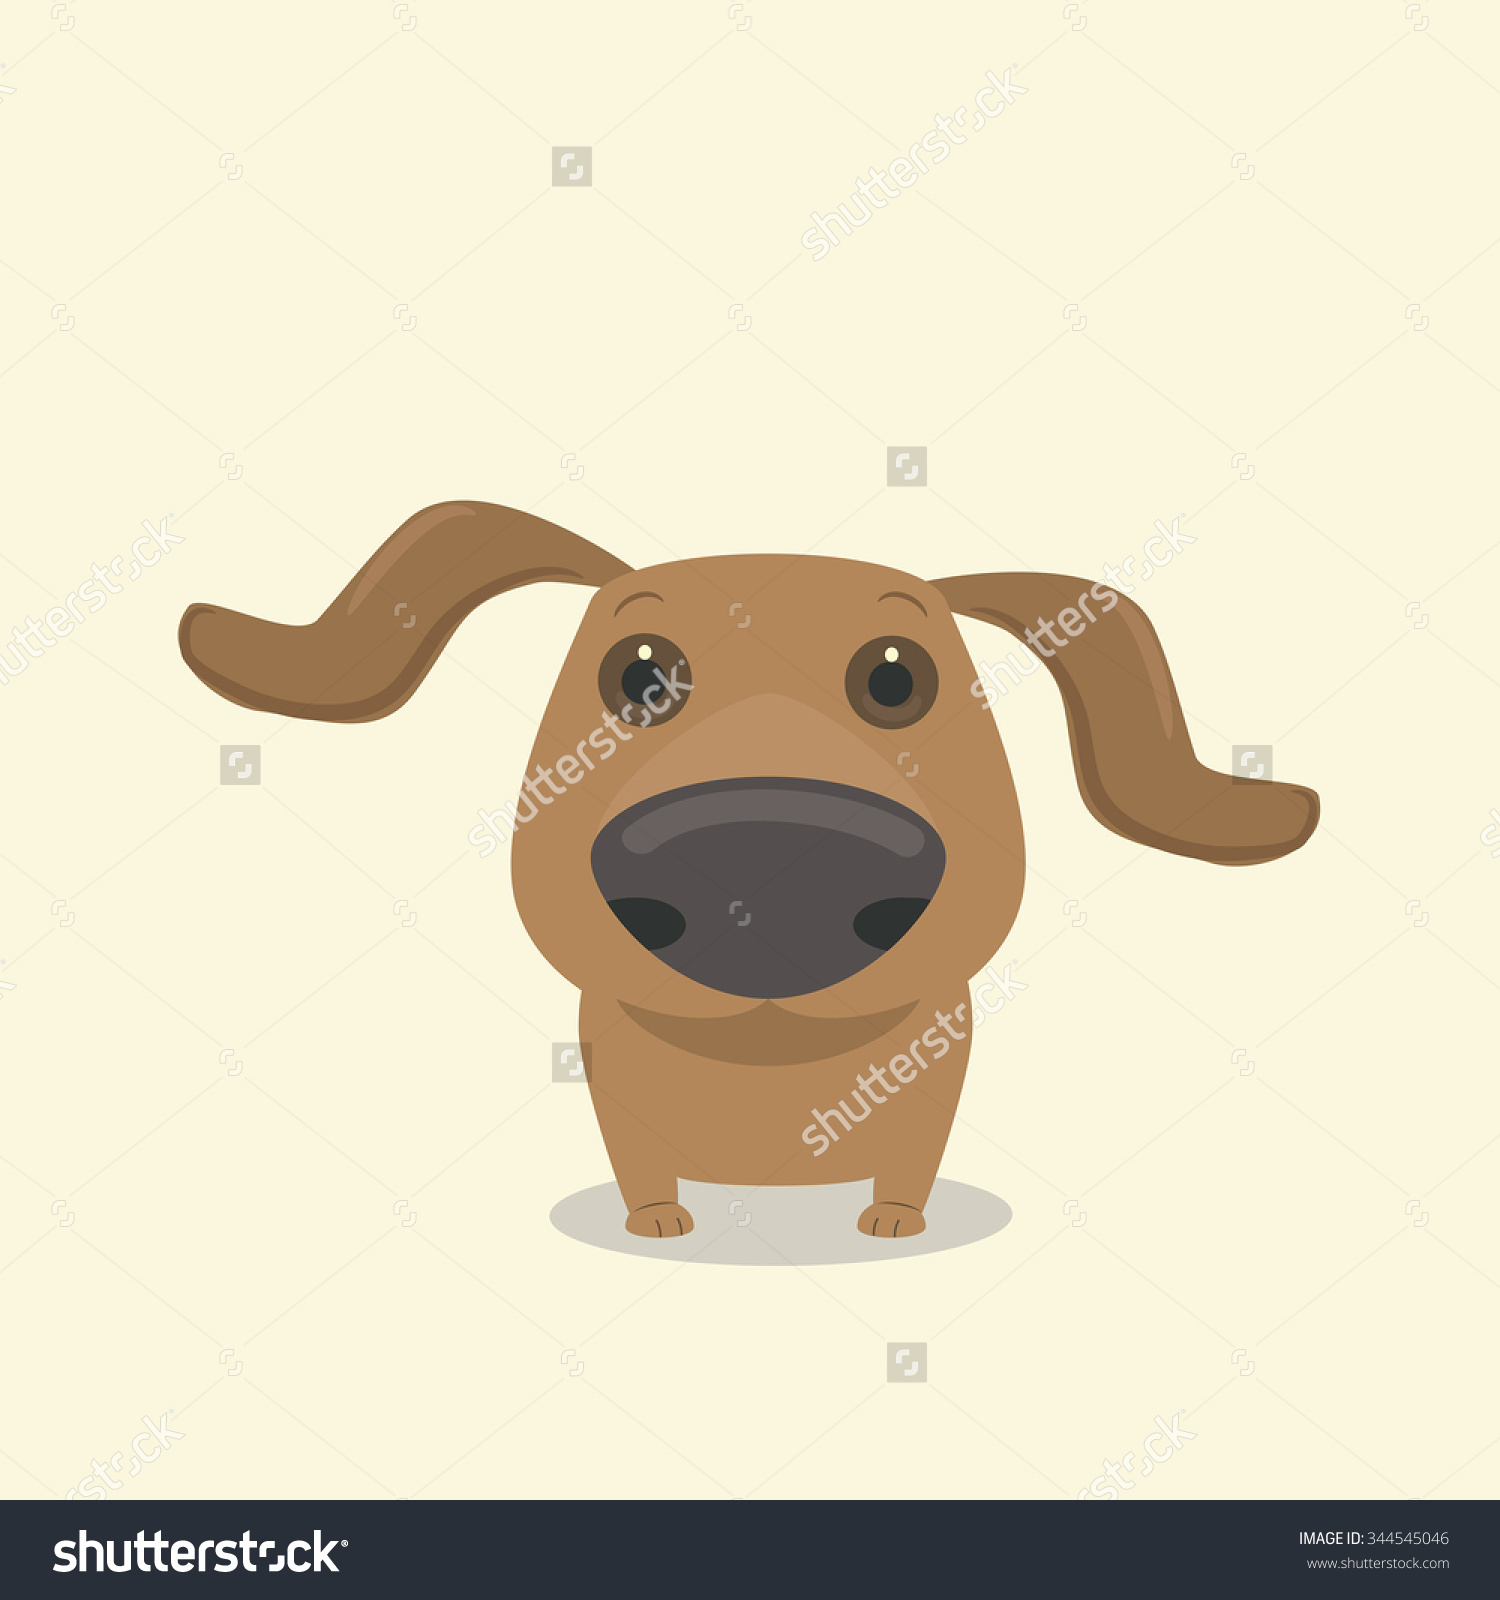 Dog Dachshunds Nose Vector Illustration Can Stock Vector 344545046.